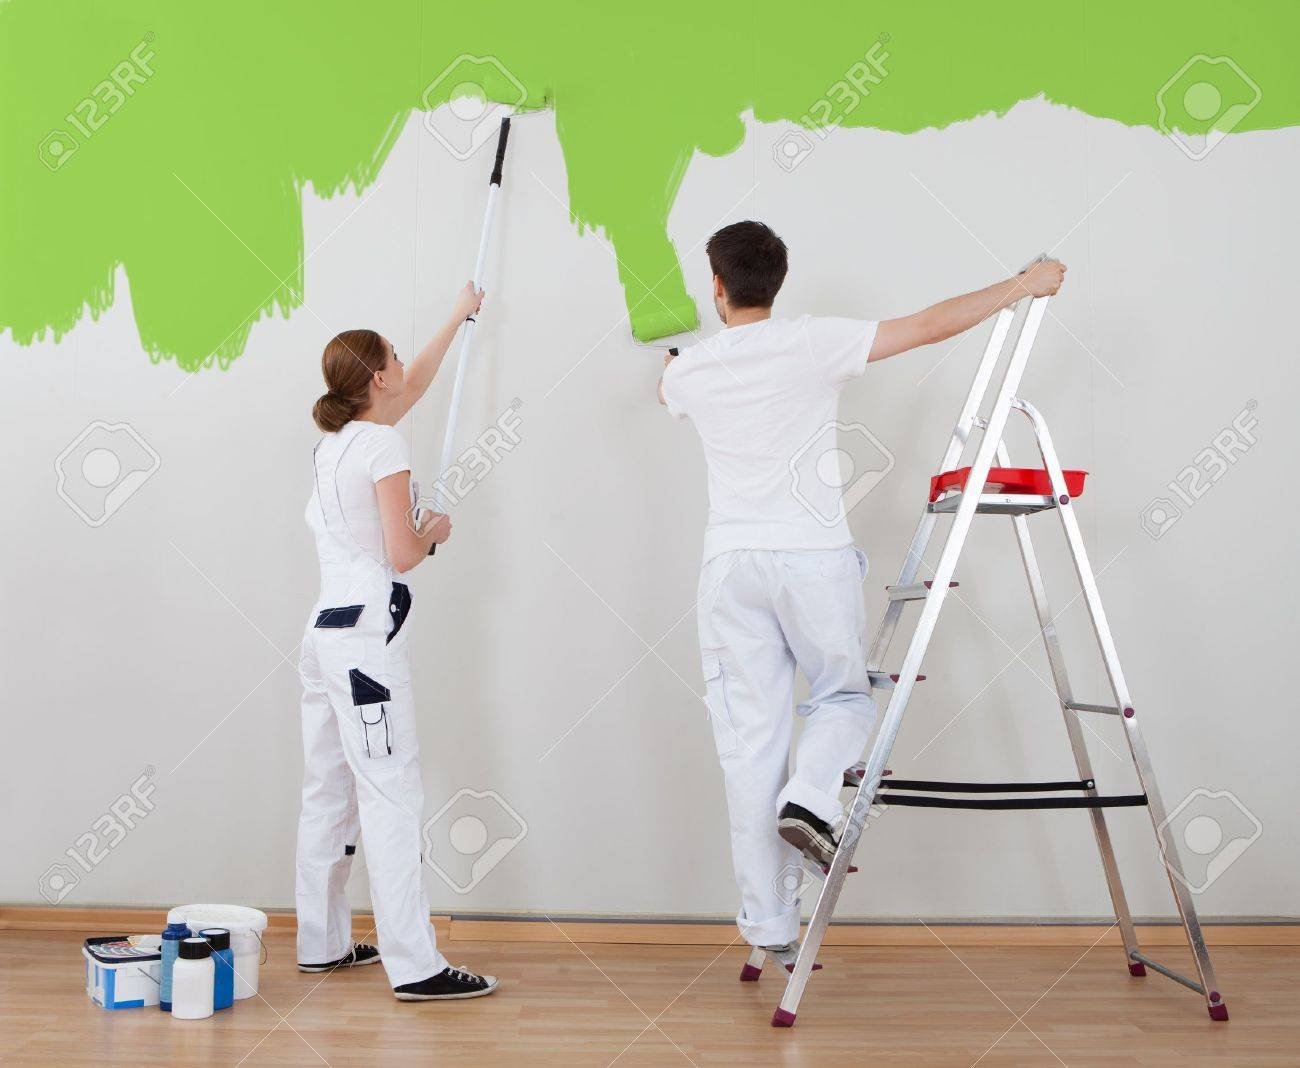 Person painting wall - Painting Wall Portrait Of Young Couple Painting Wall Together Stock Photo